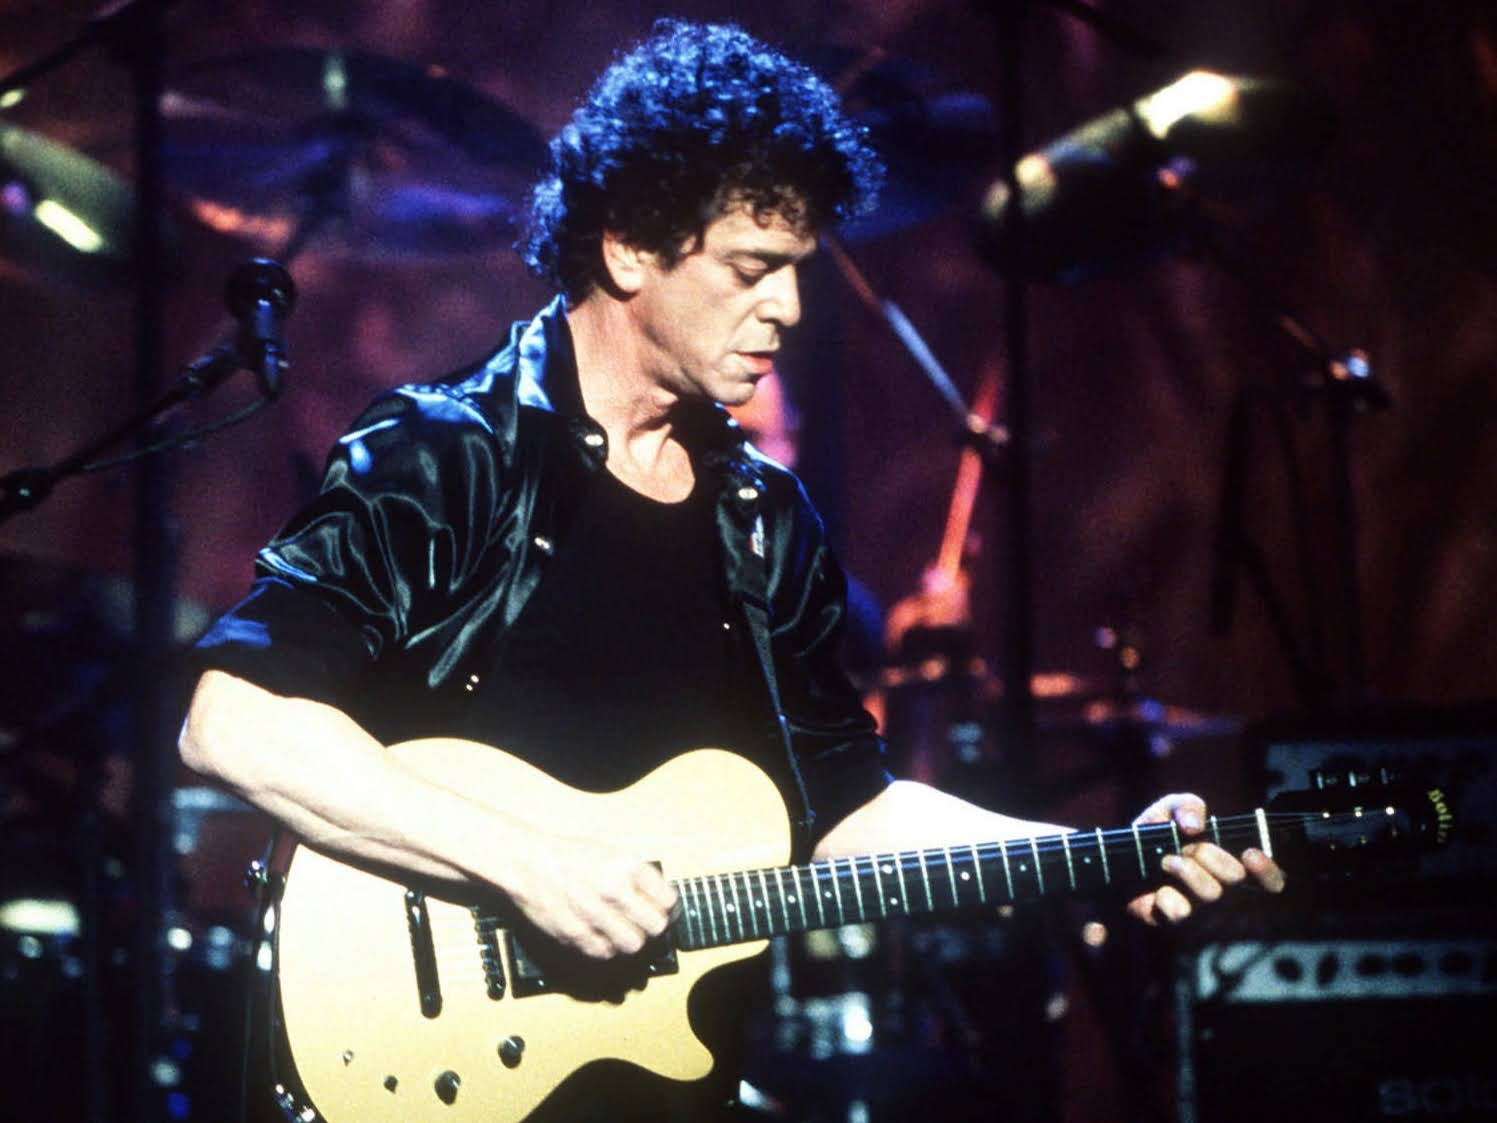 Lou Reed and John Mellencamp shared an Indiana stage in 1987. Now you can watch the show.